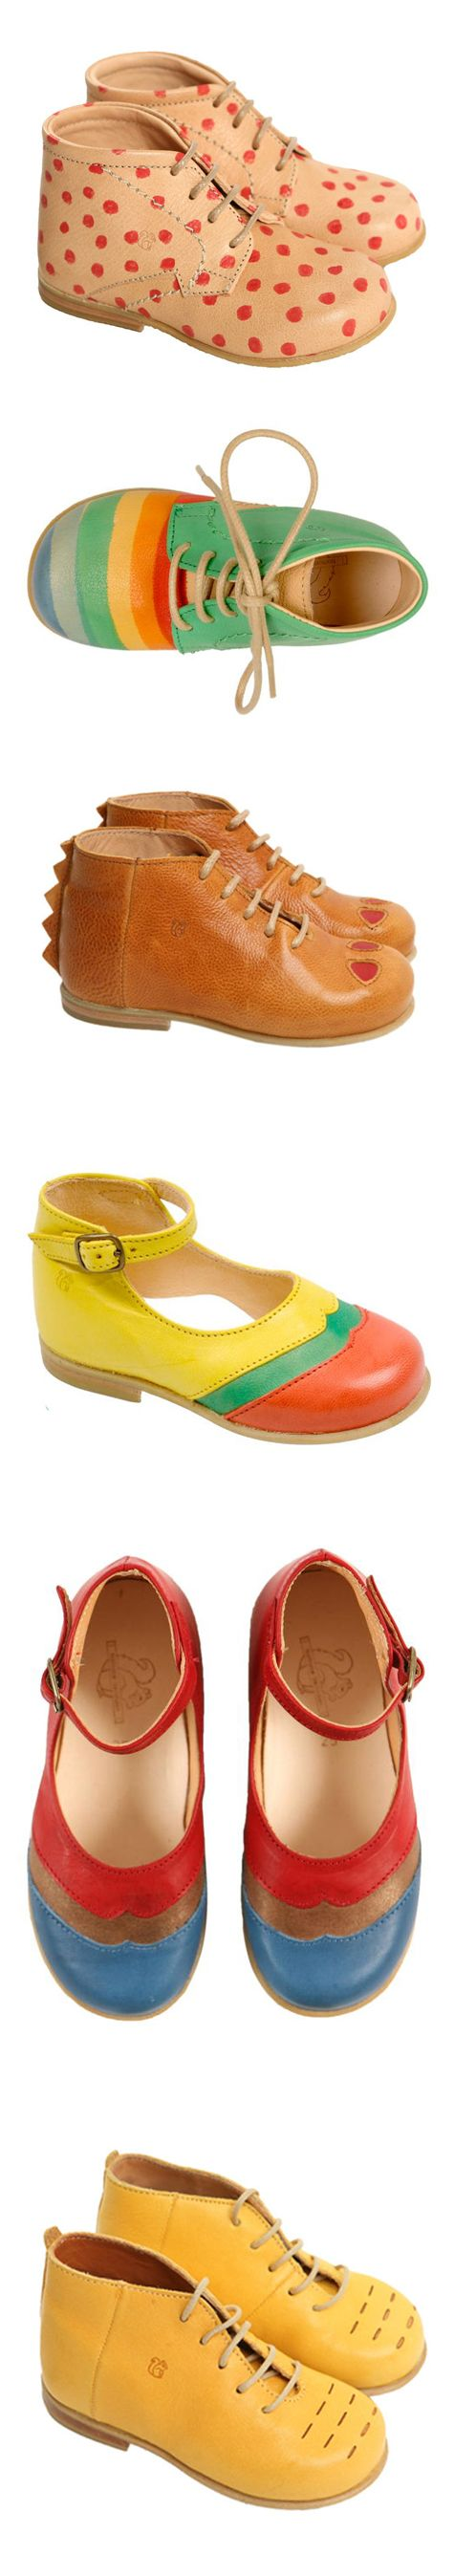 Kiddie shoes? What about mommy?! Xoxo